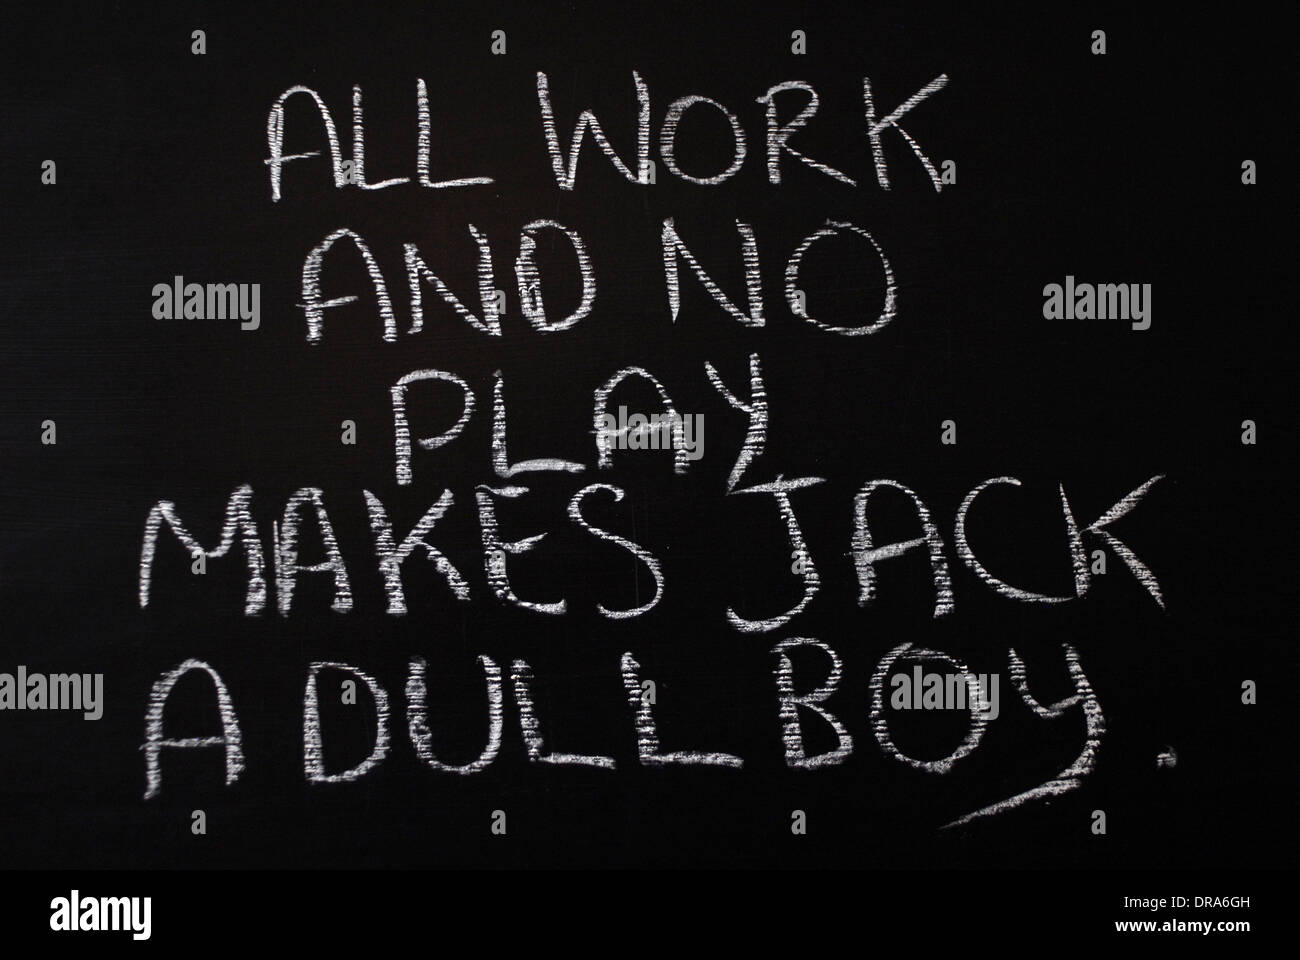 chalk writing- All work and no play makes jack a dull boy - words written on blackboard. - Stock Image